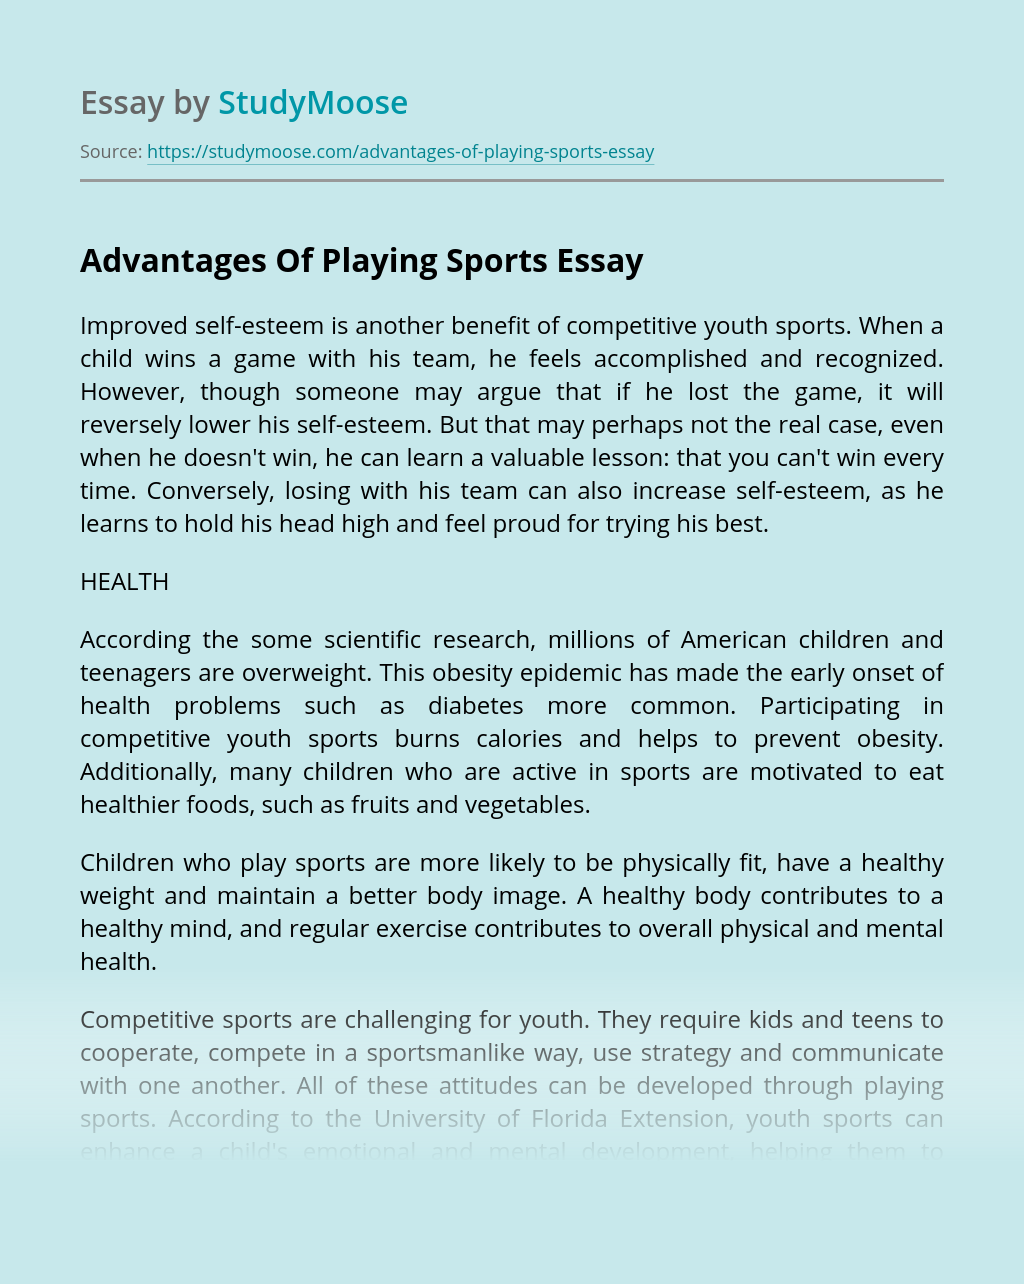 Advantages Of Playing Sports